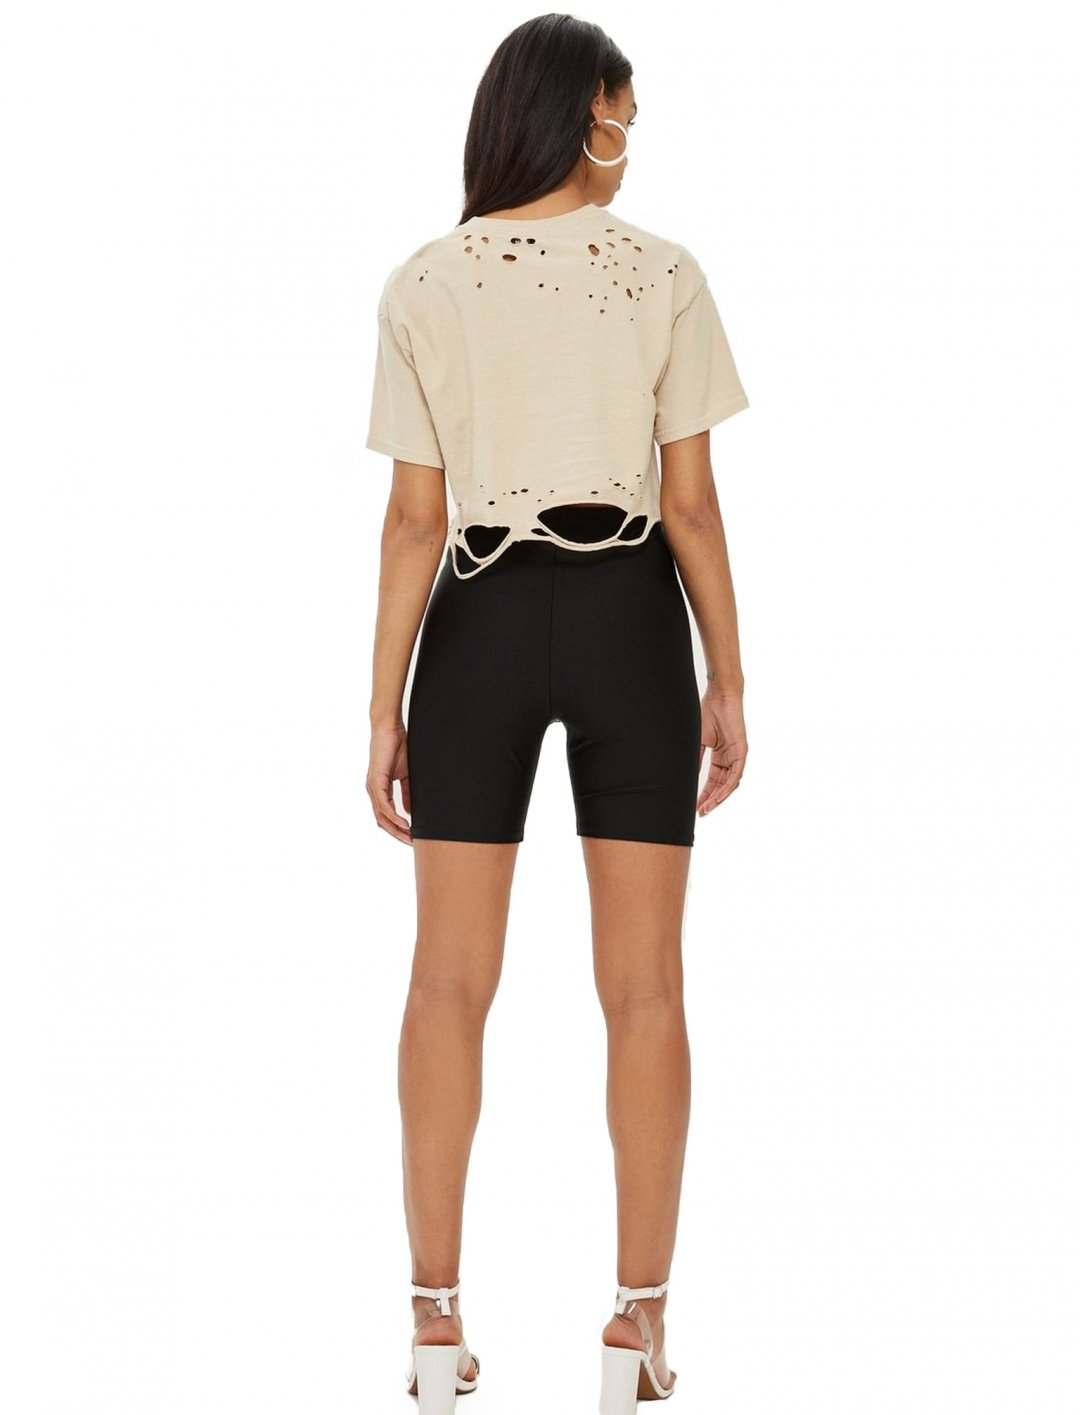 "Imani's Cycling Shorts {""id"":5,""product_section_id"":1,""name"":""Clothing"",""order"":5} Topshop"